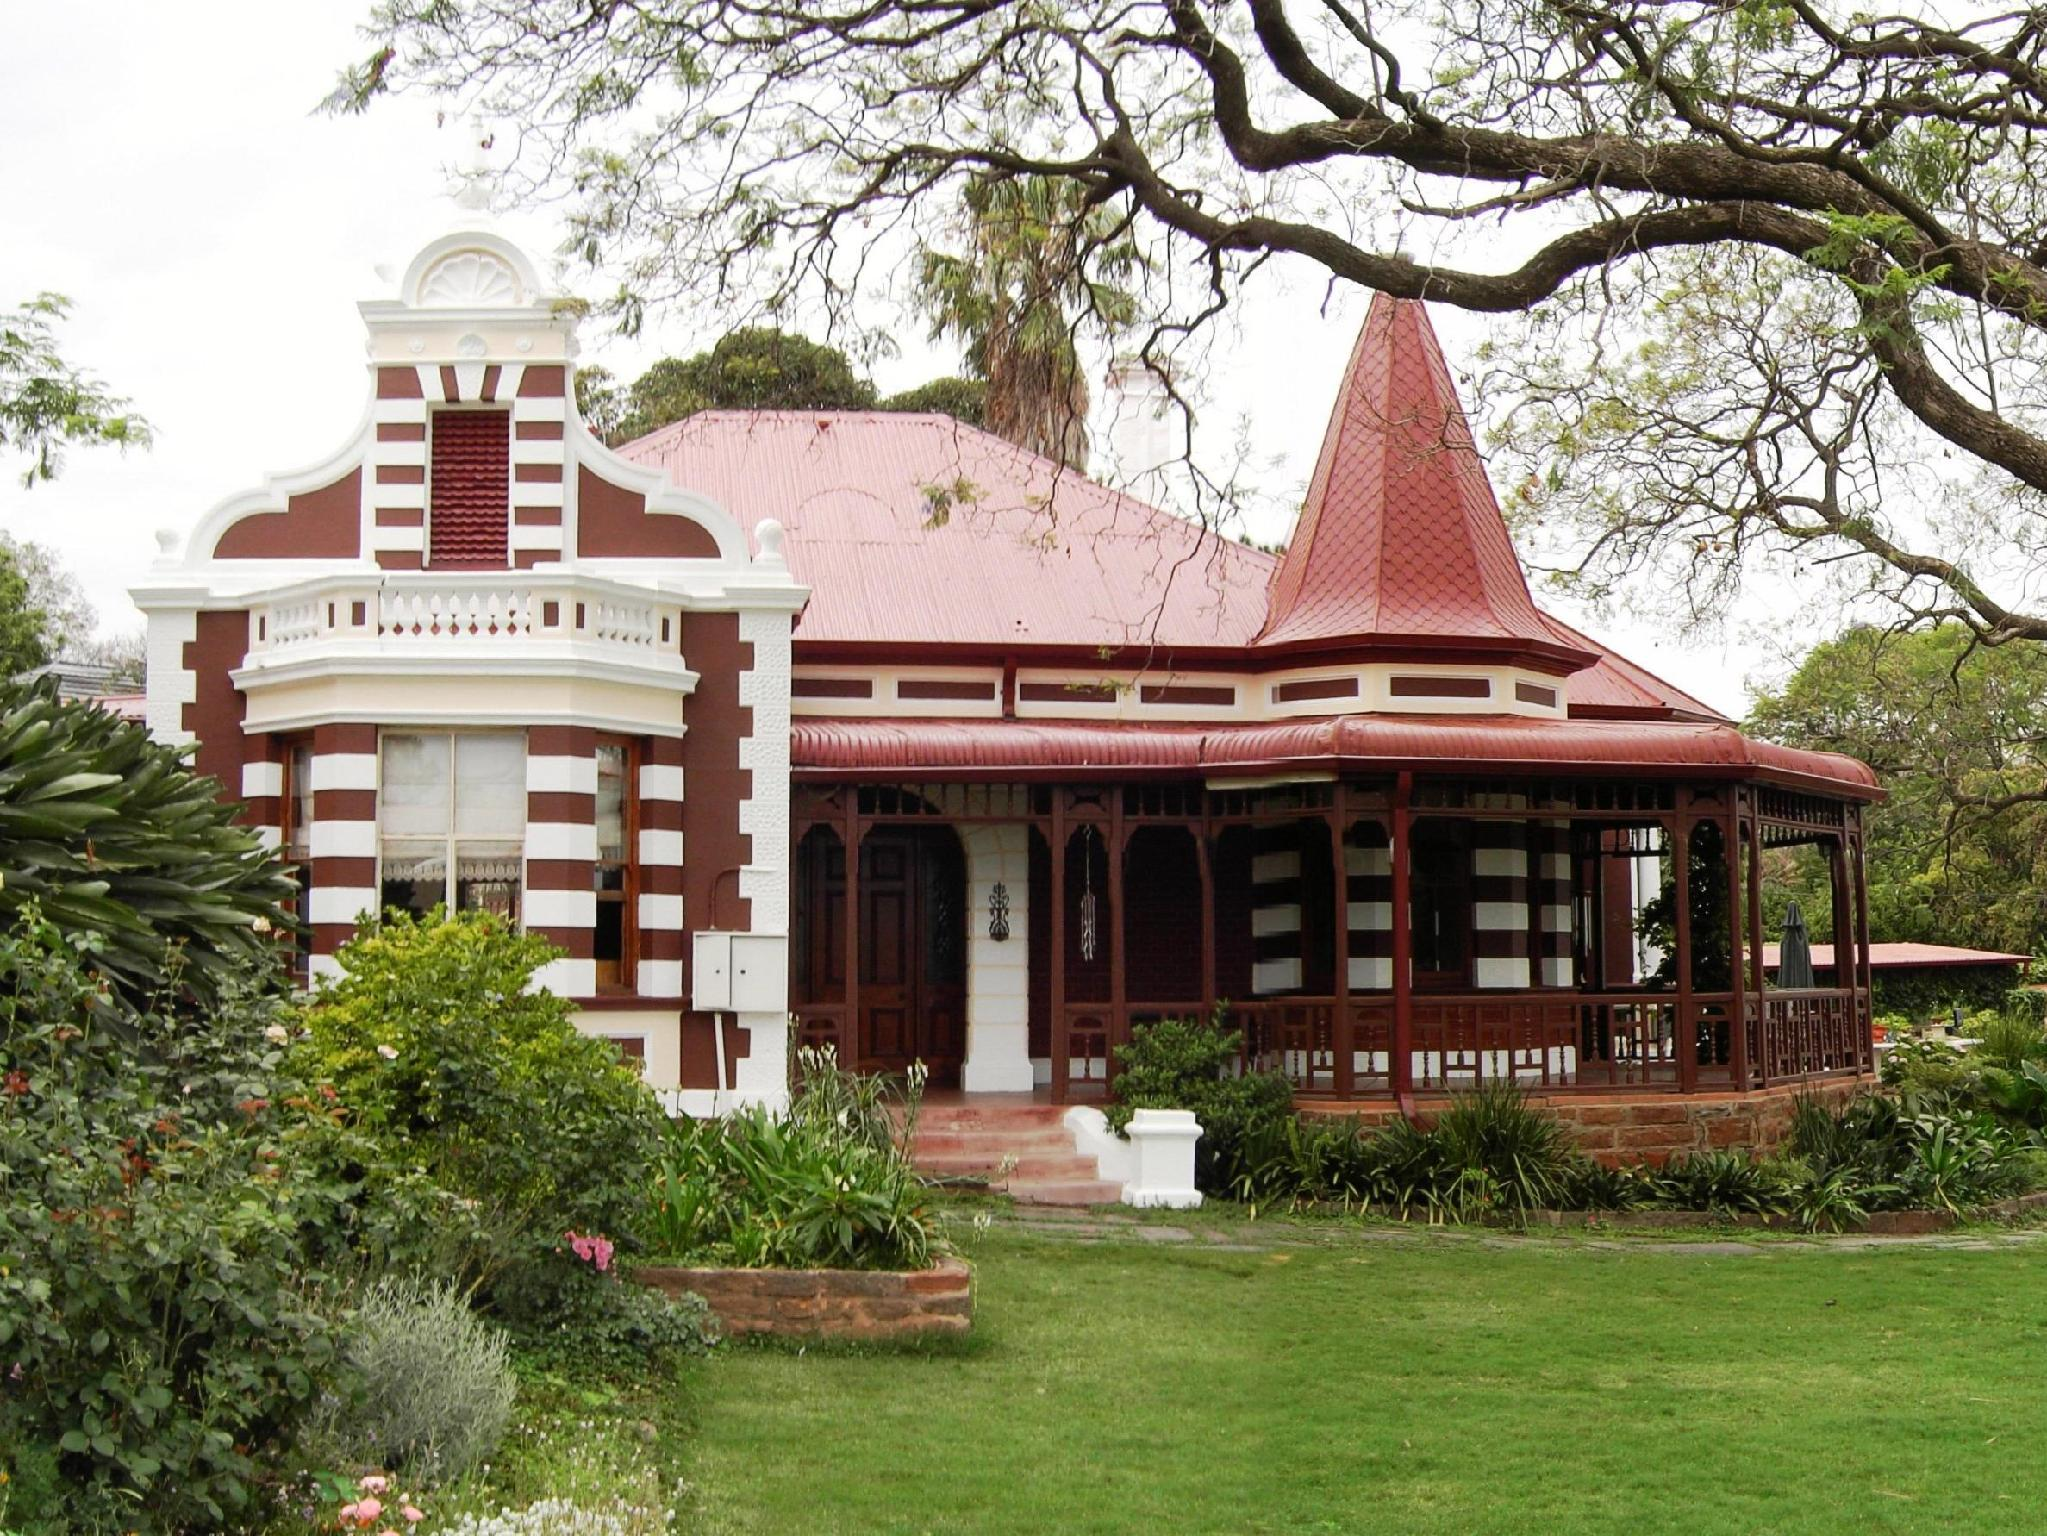 Melvin Residence Guest House, City of Tshwane